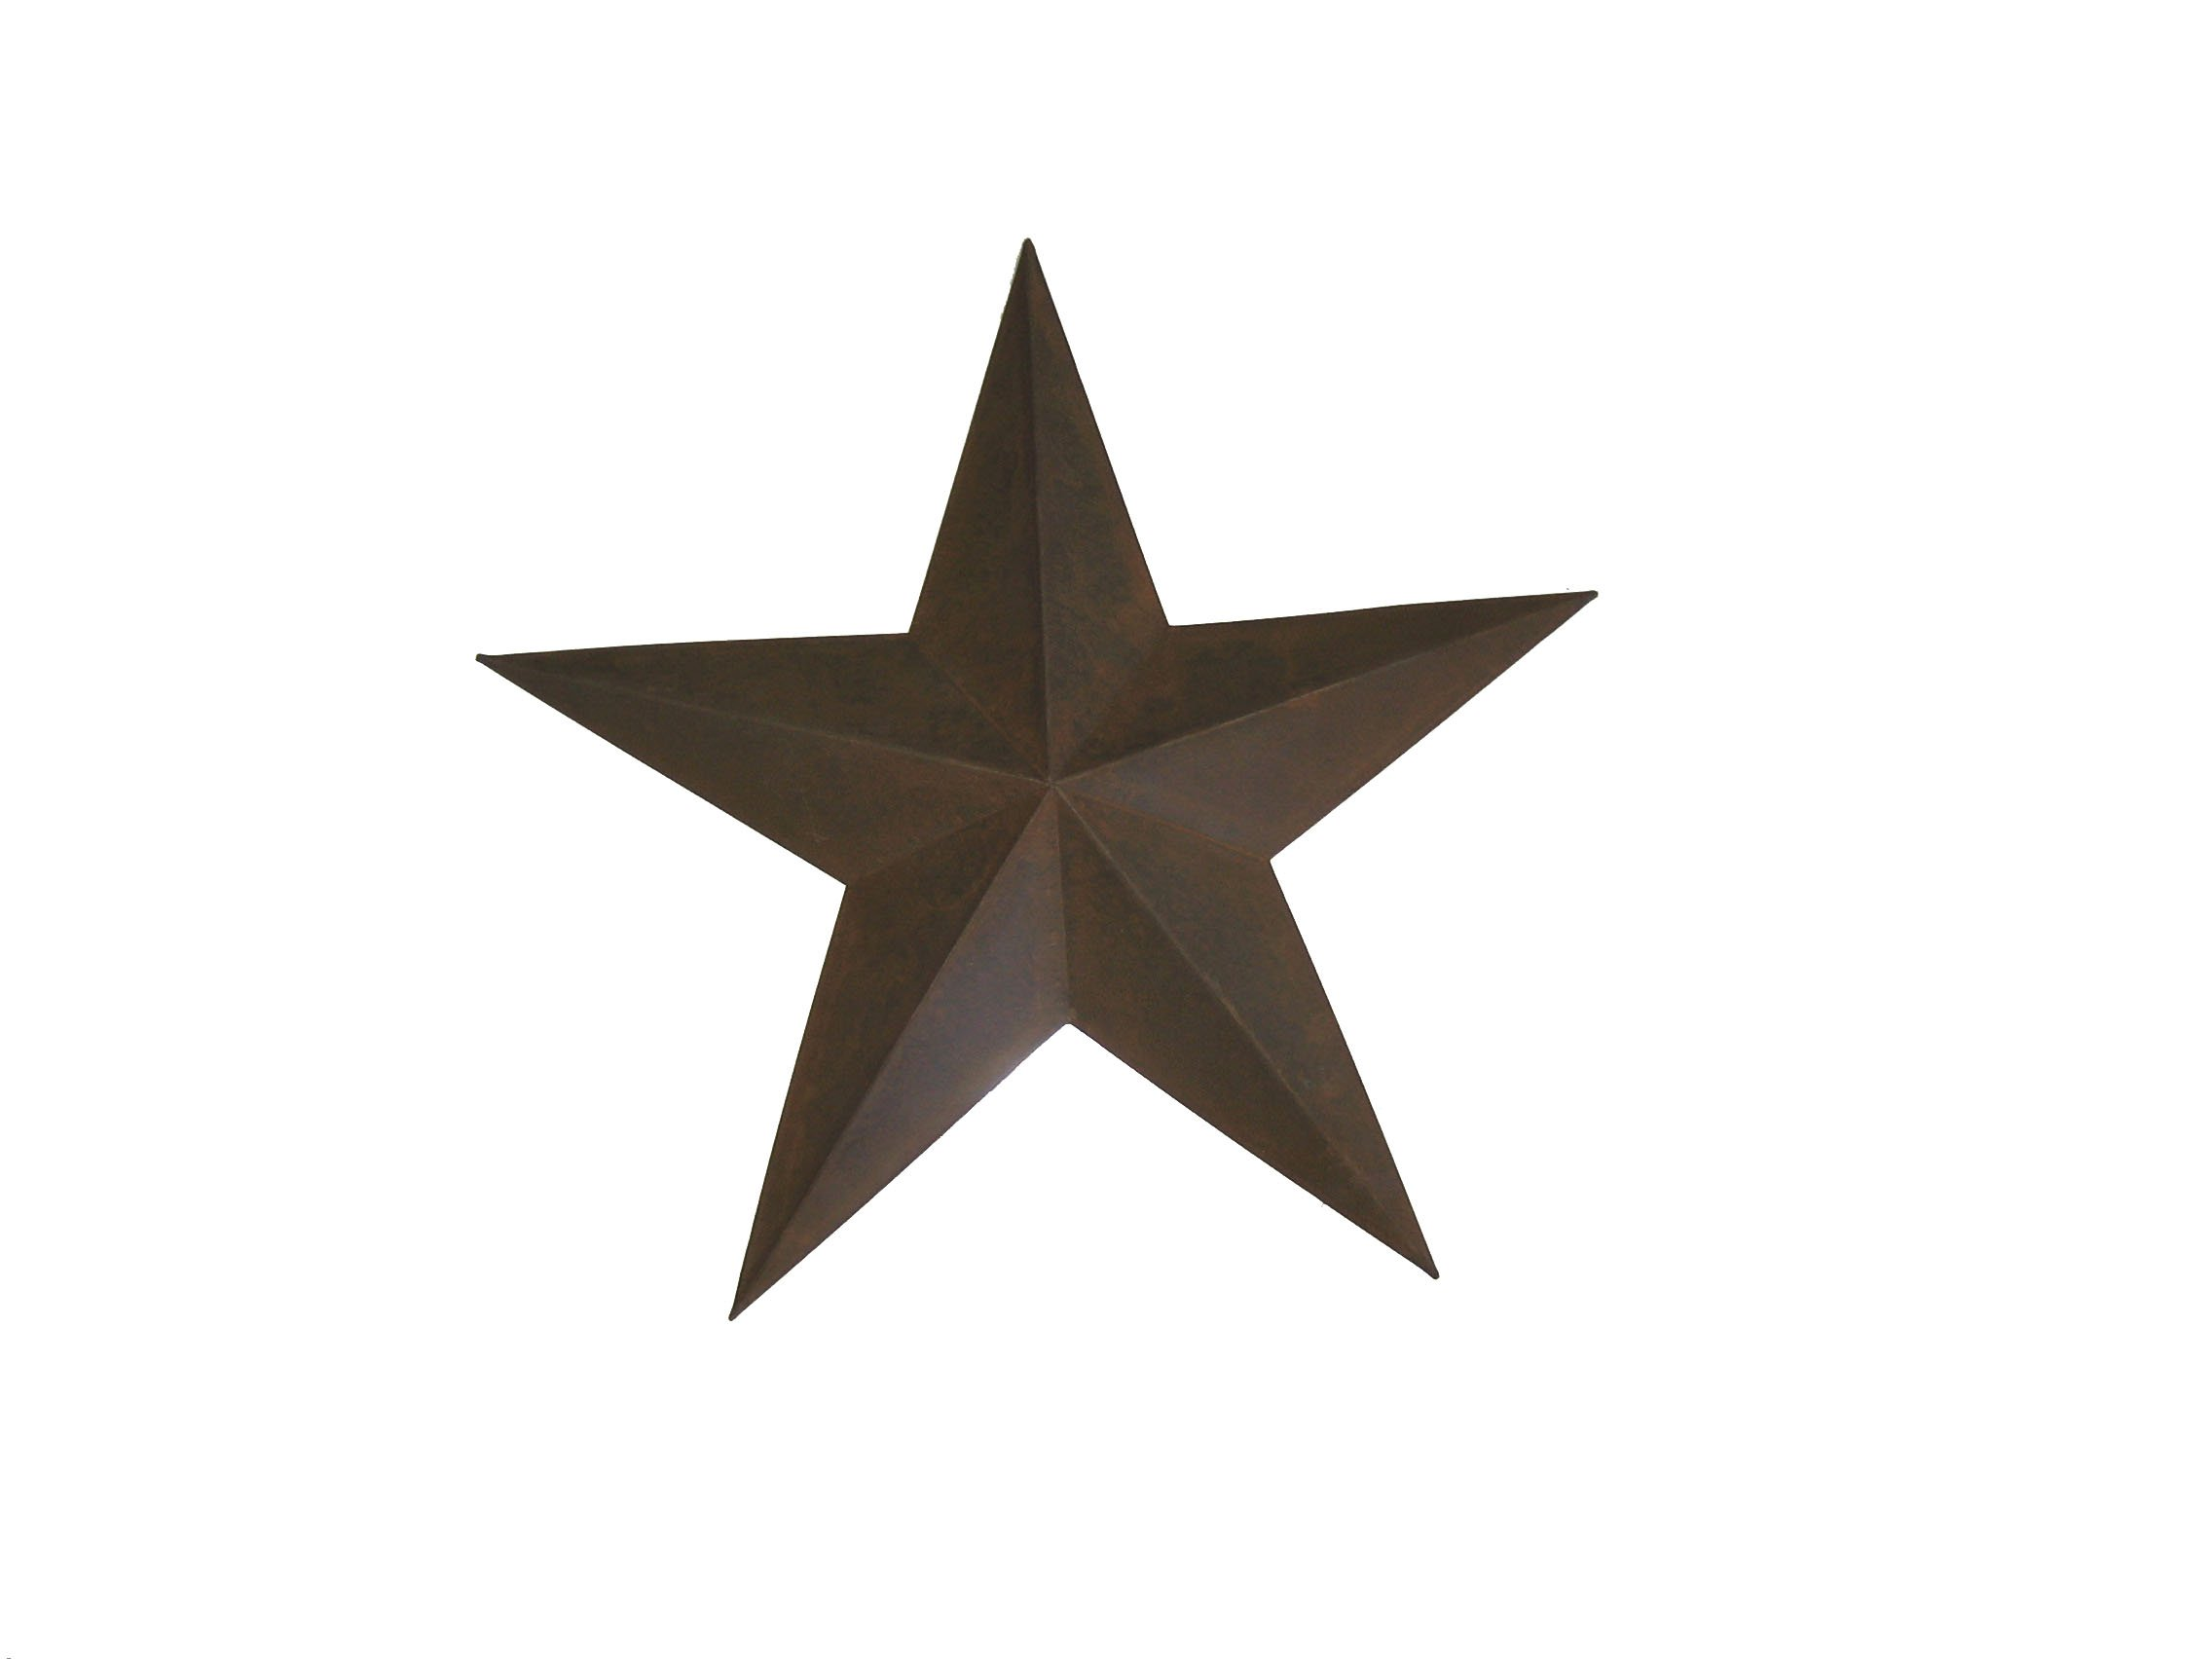 Craft Outlet Tin Star Wall Decor, 24-Inch, Rust